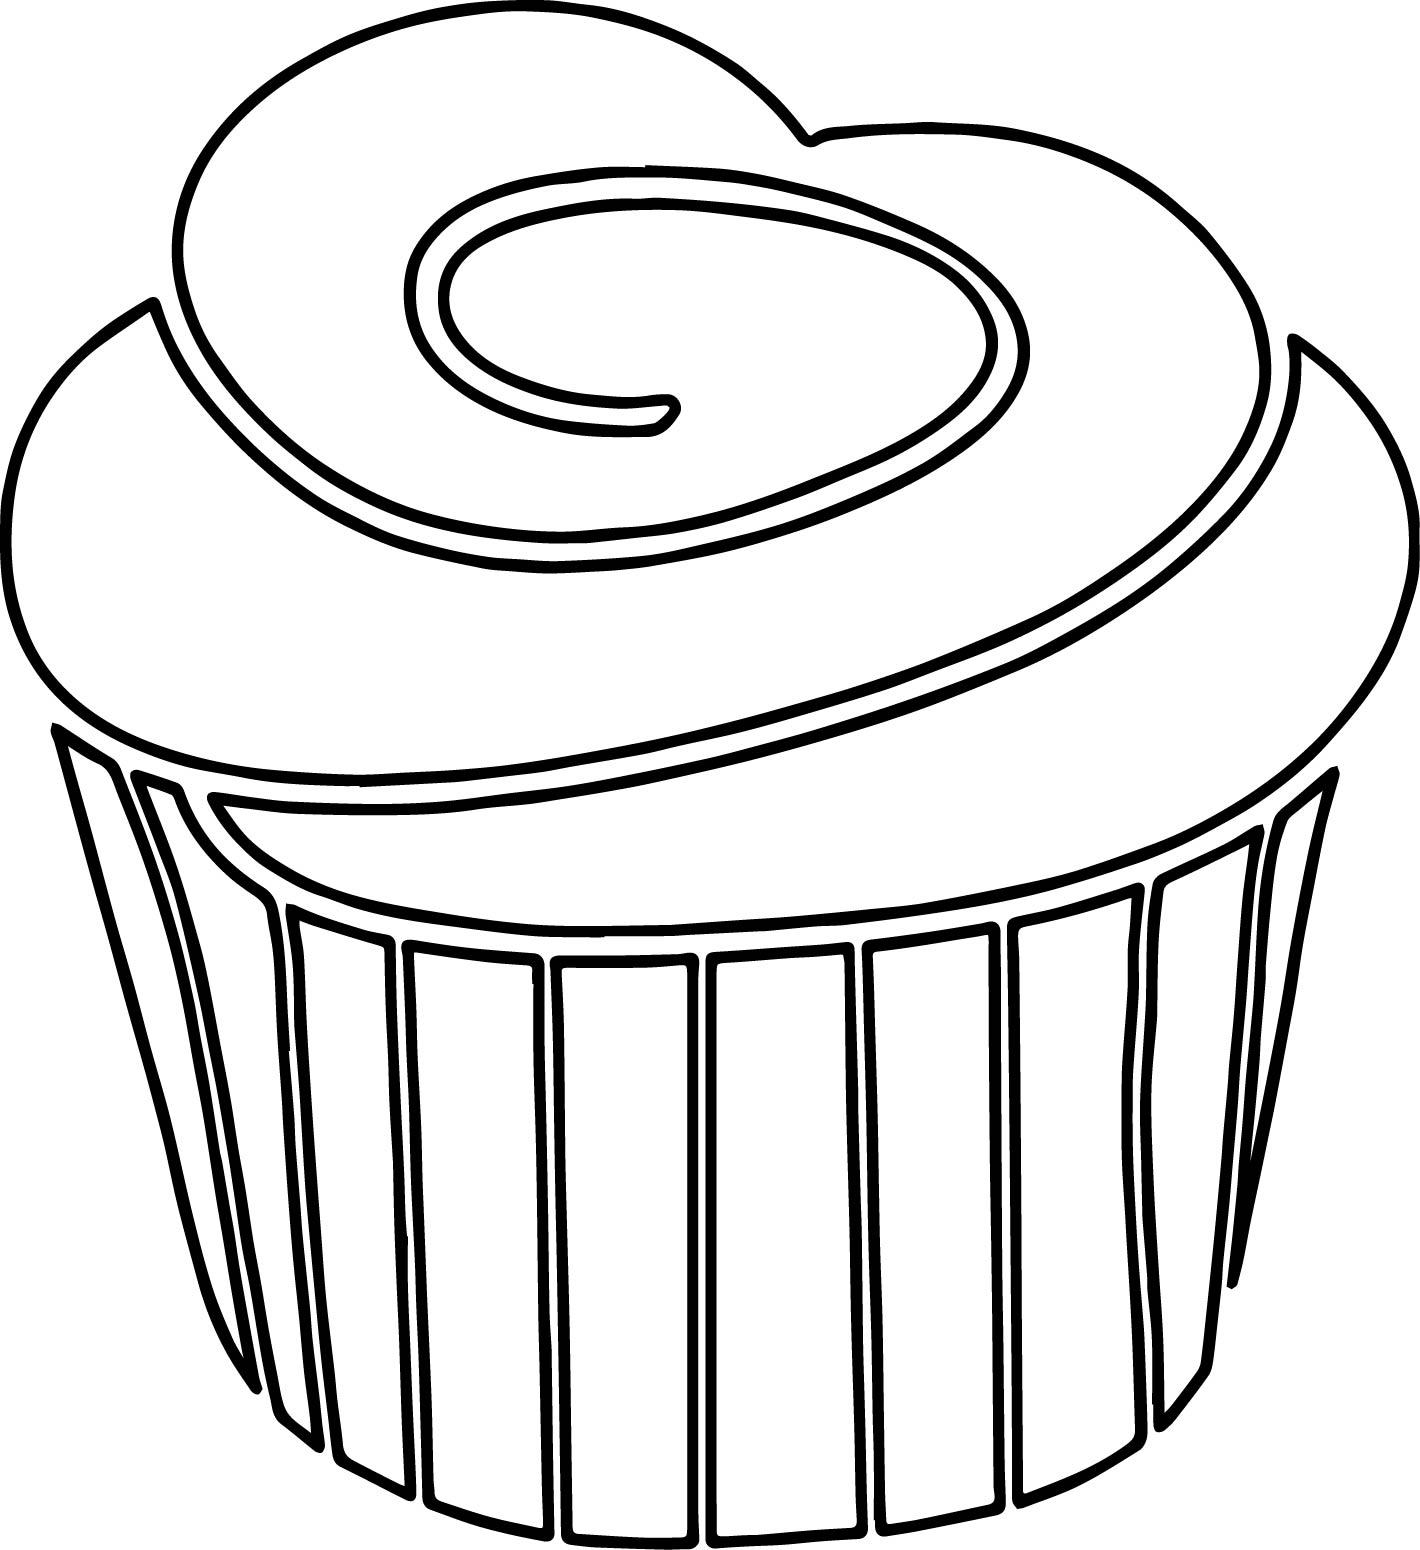 1420x1550 Frosting Clipart Black And White